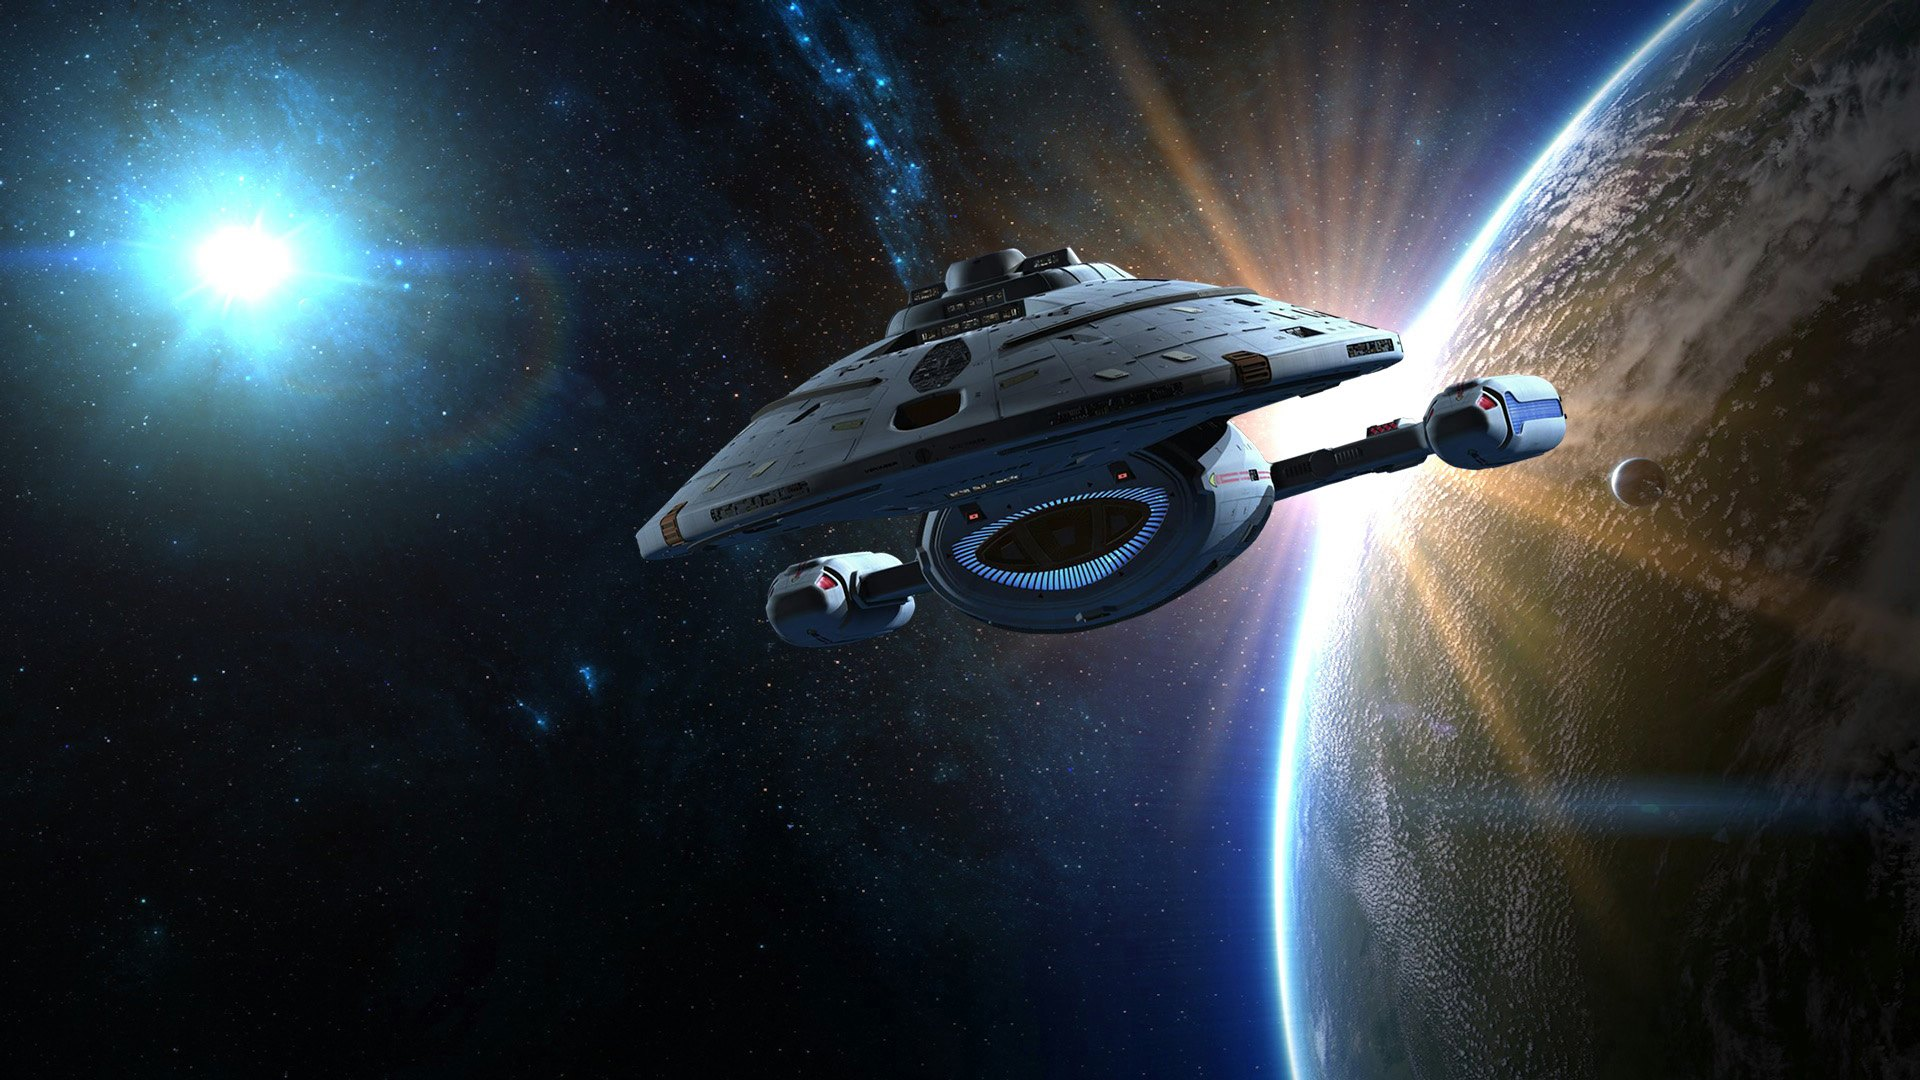 Startrek Wallpapers